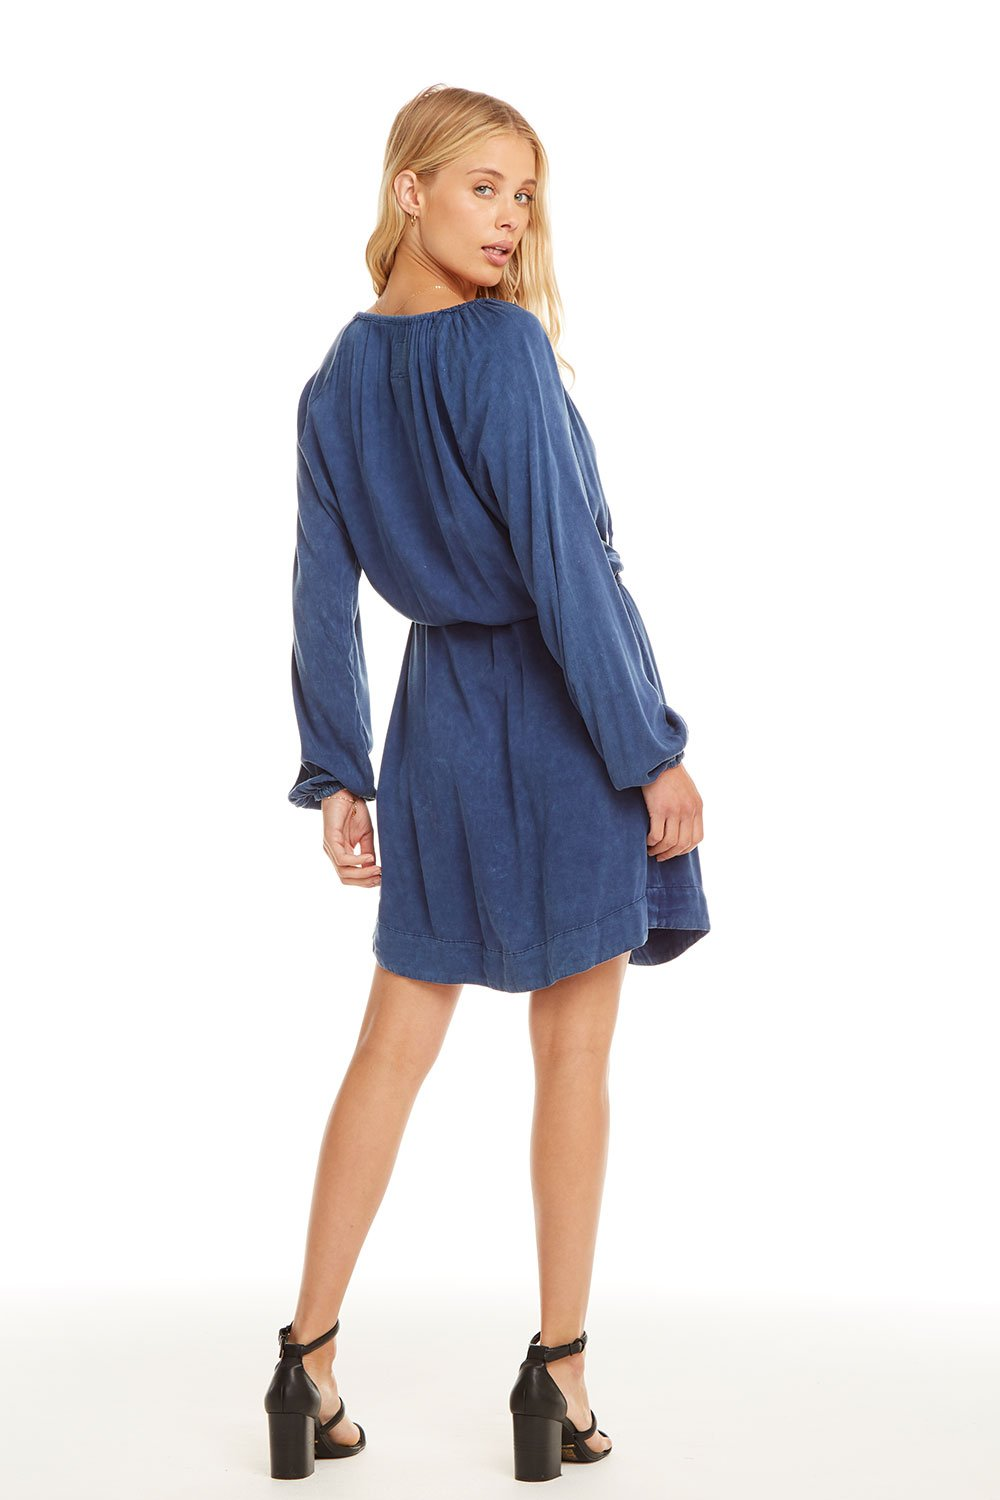 Chaser Heirloom Woven Shirttail Dress with Belt